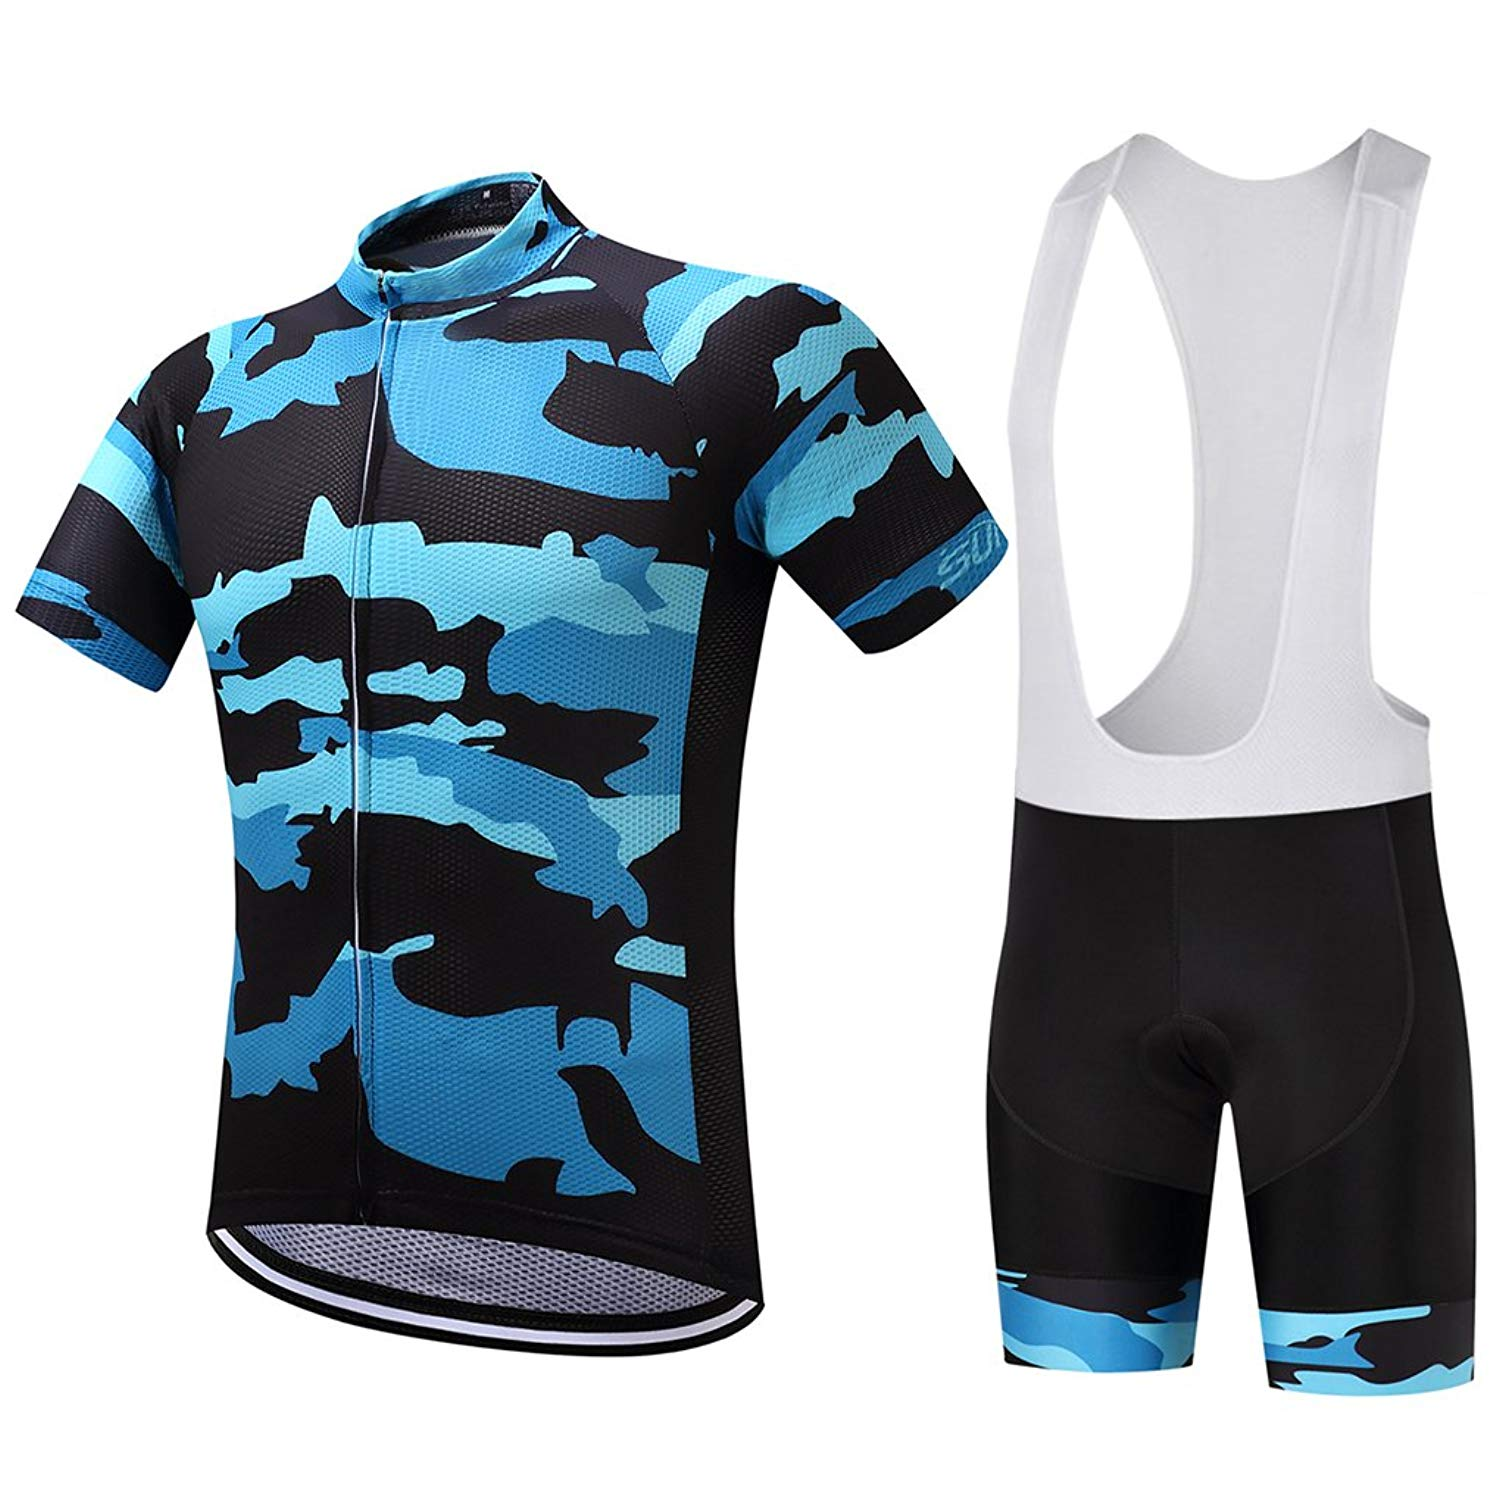 70e708a81 Get Quotations · Bike Cycling Jersey Sets Road MTB Bicycle Clothing Bike  Cycle Wear Bib Suits